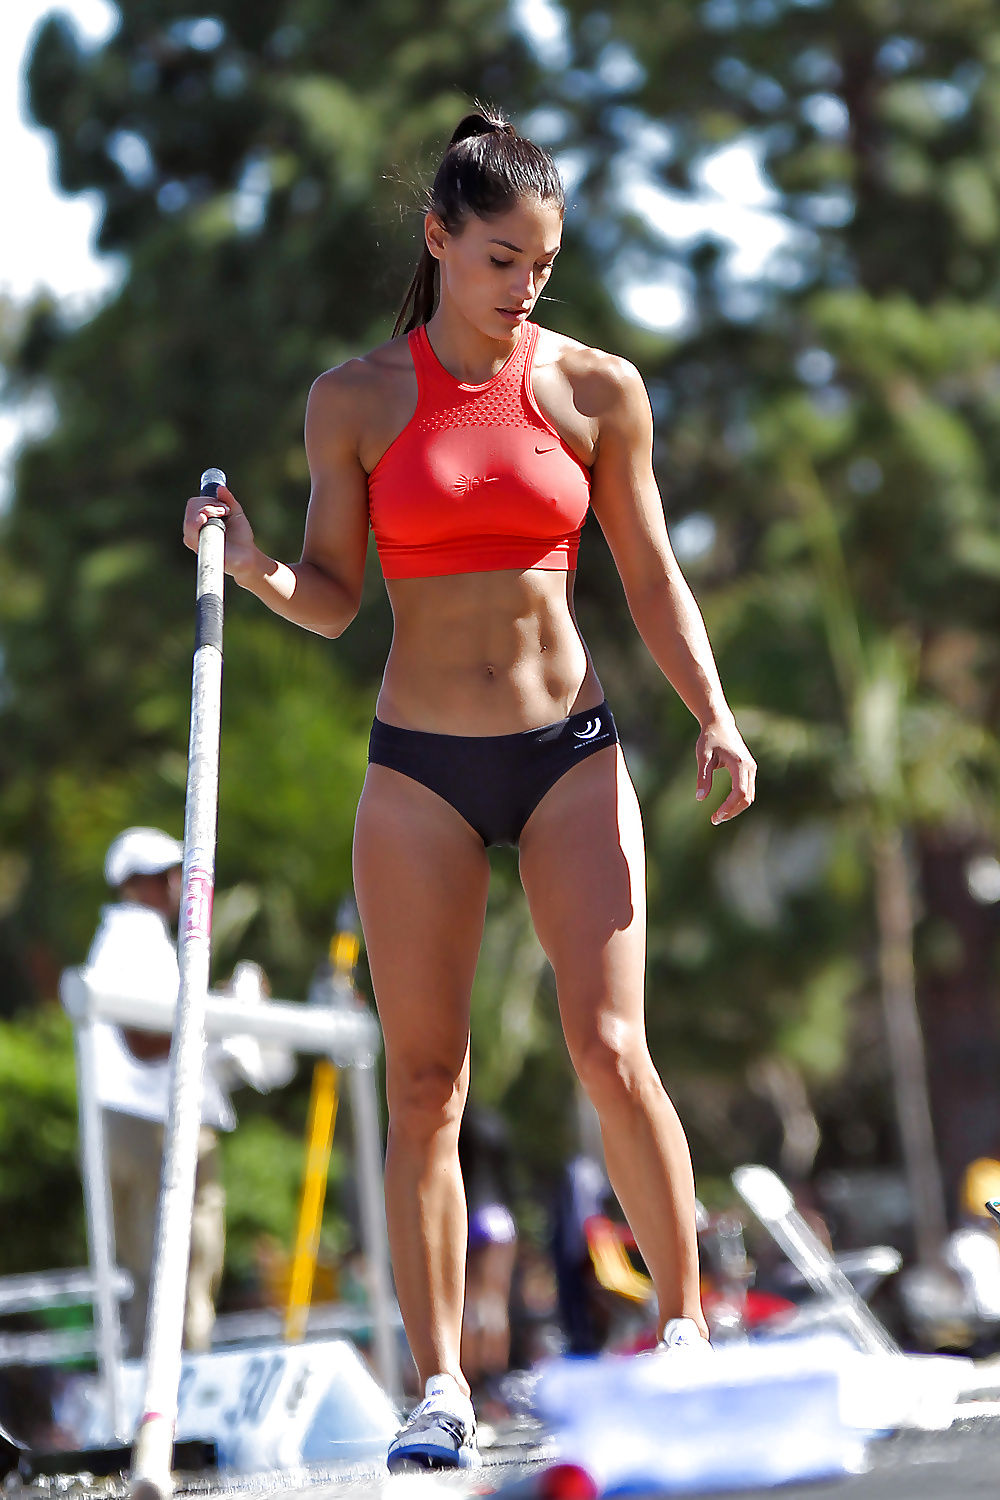 Naked pictures of allison stokke — img 14